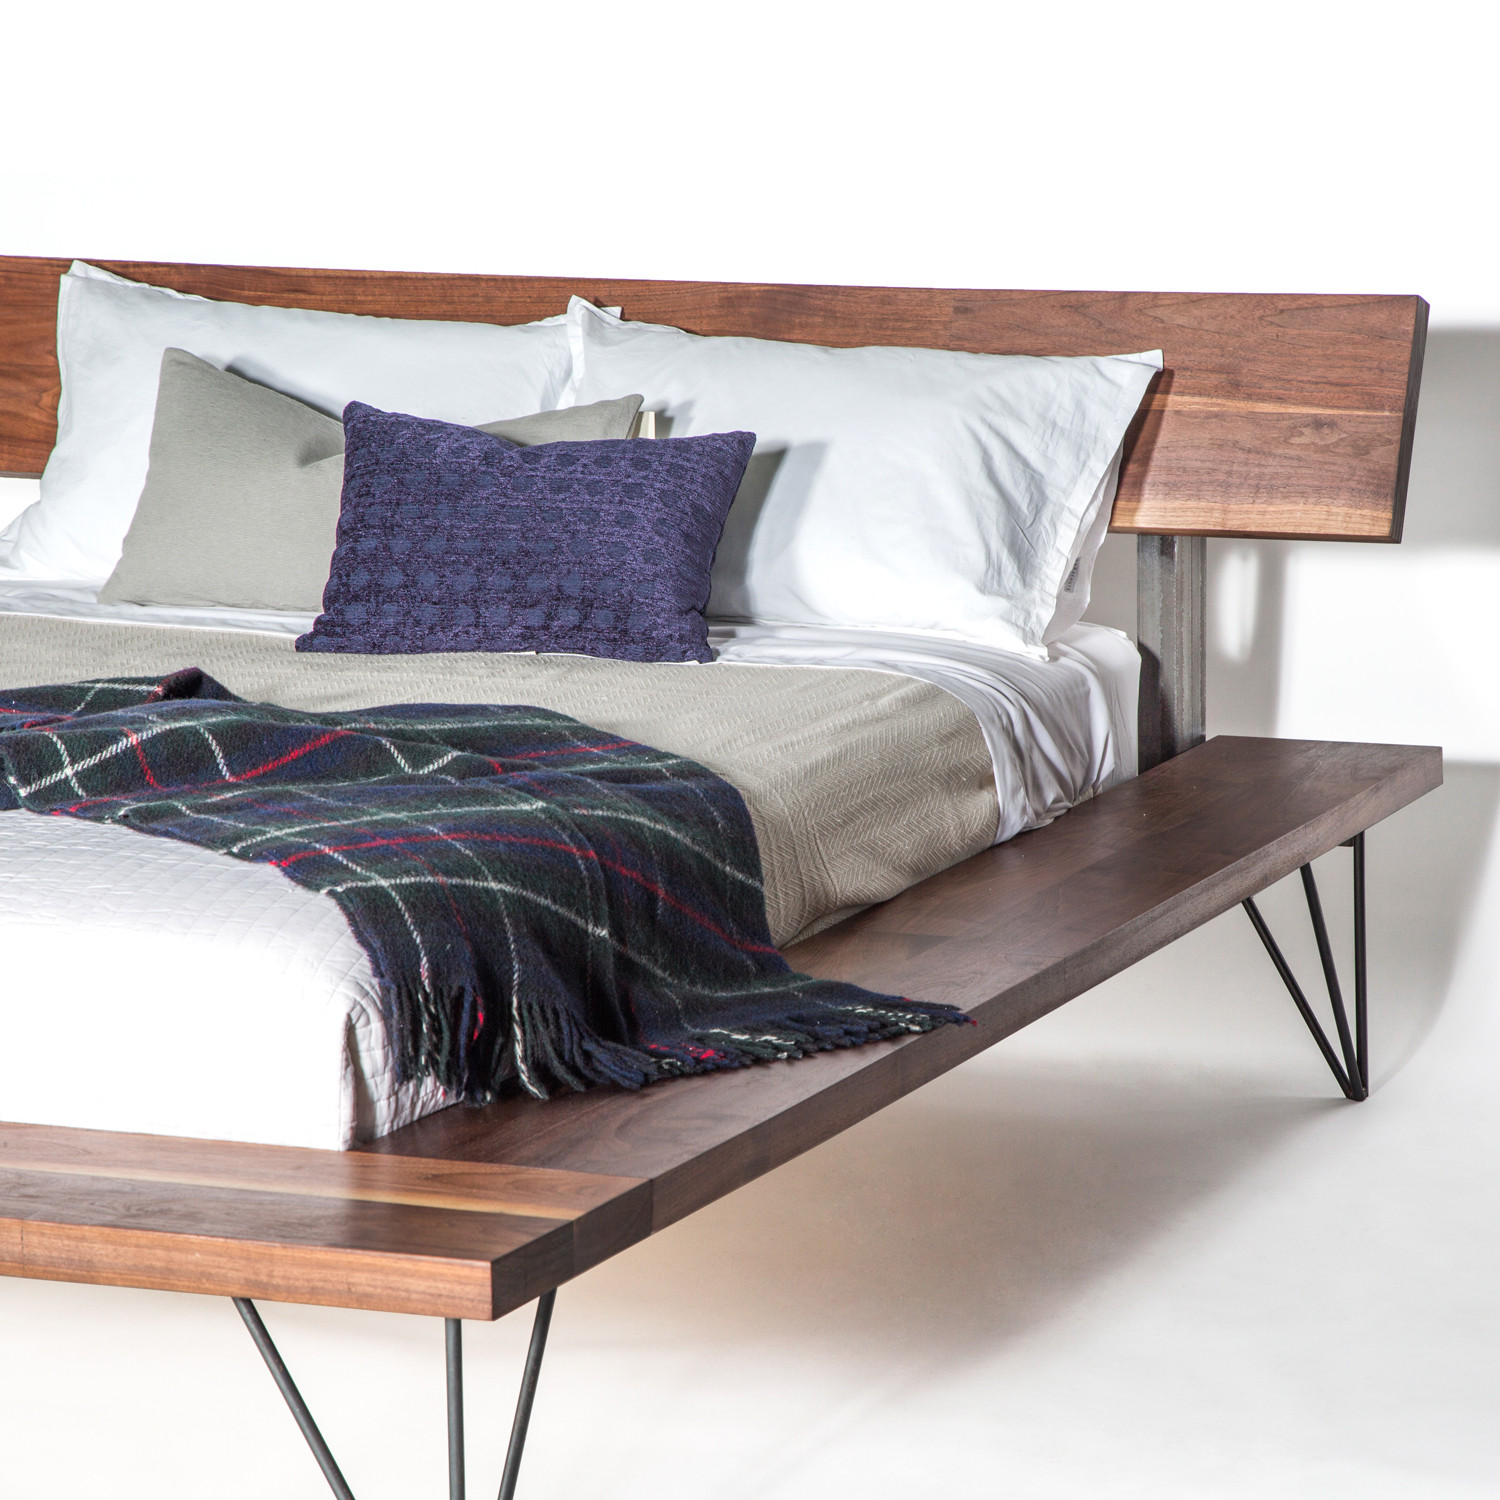 Walnut Railcar Bed Queen